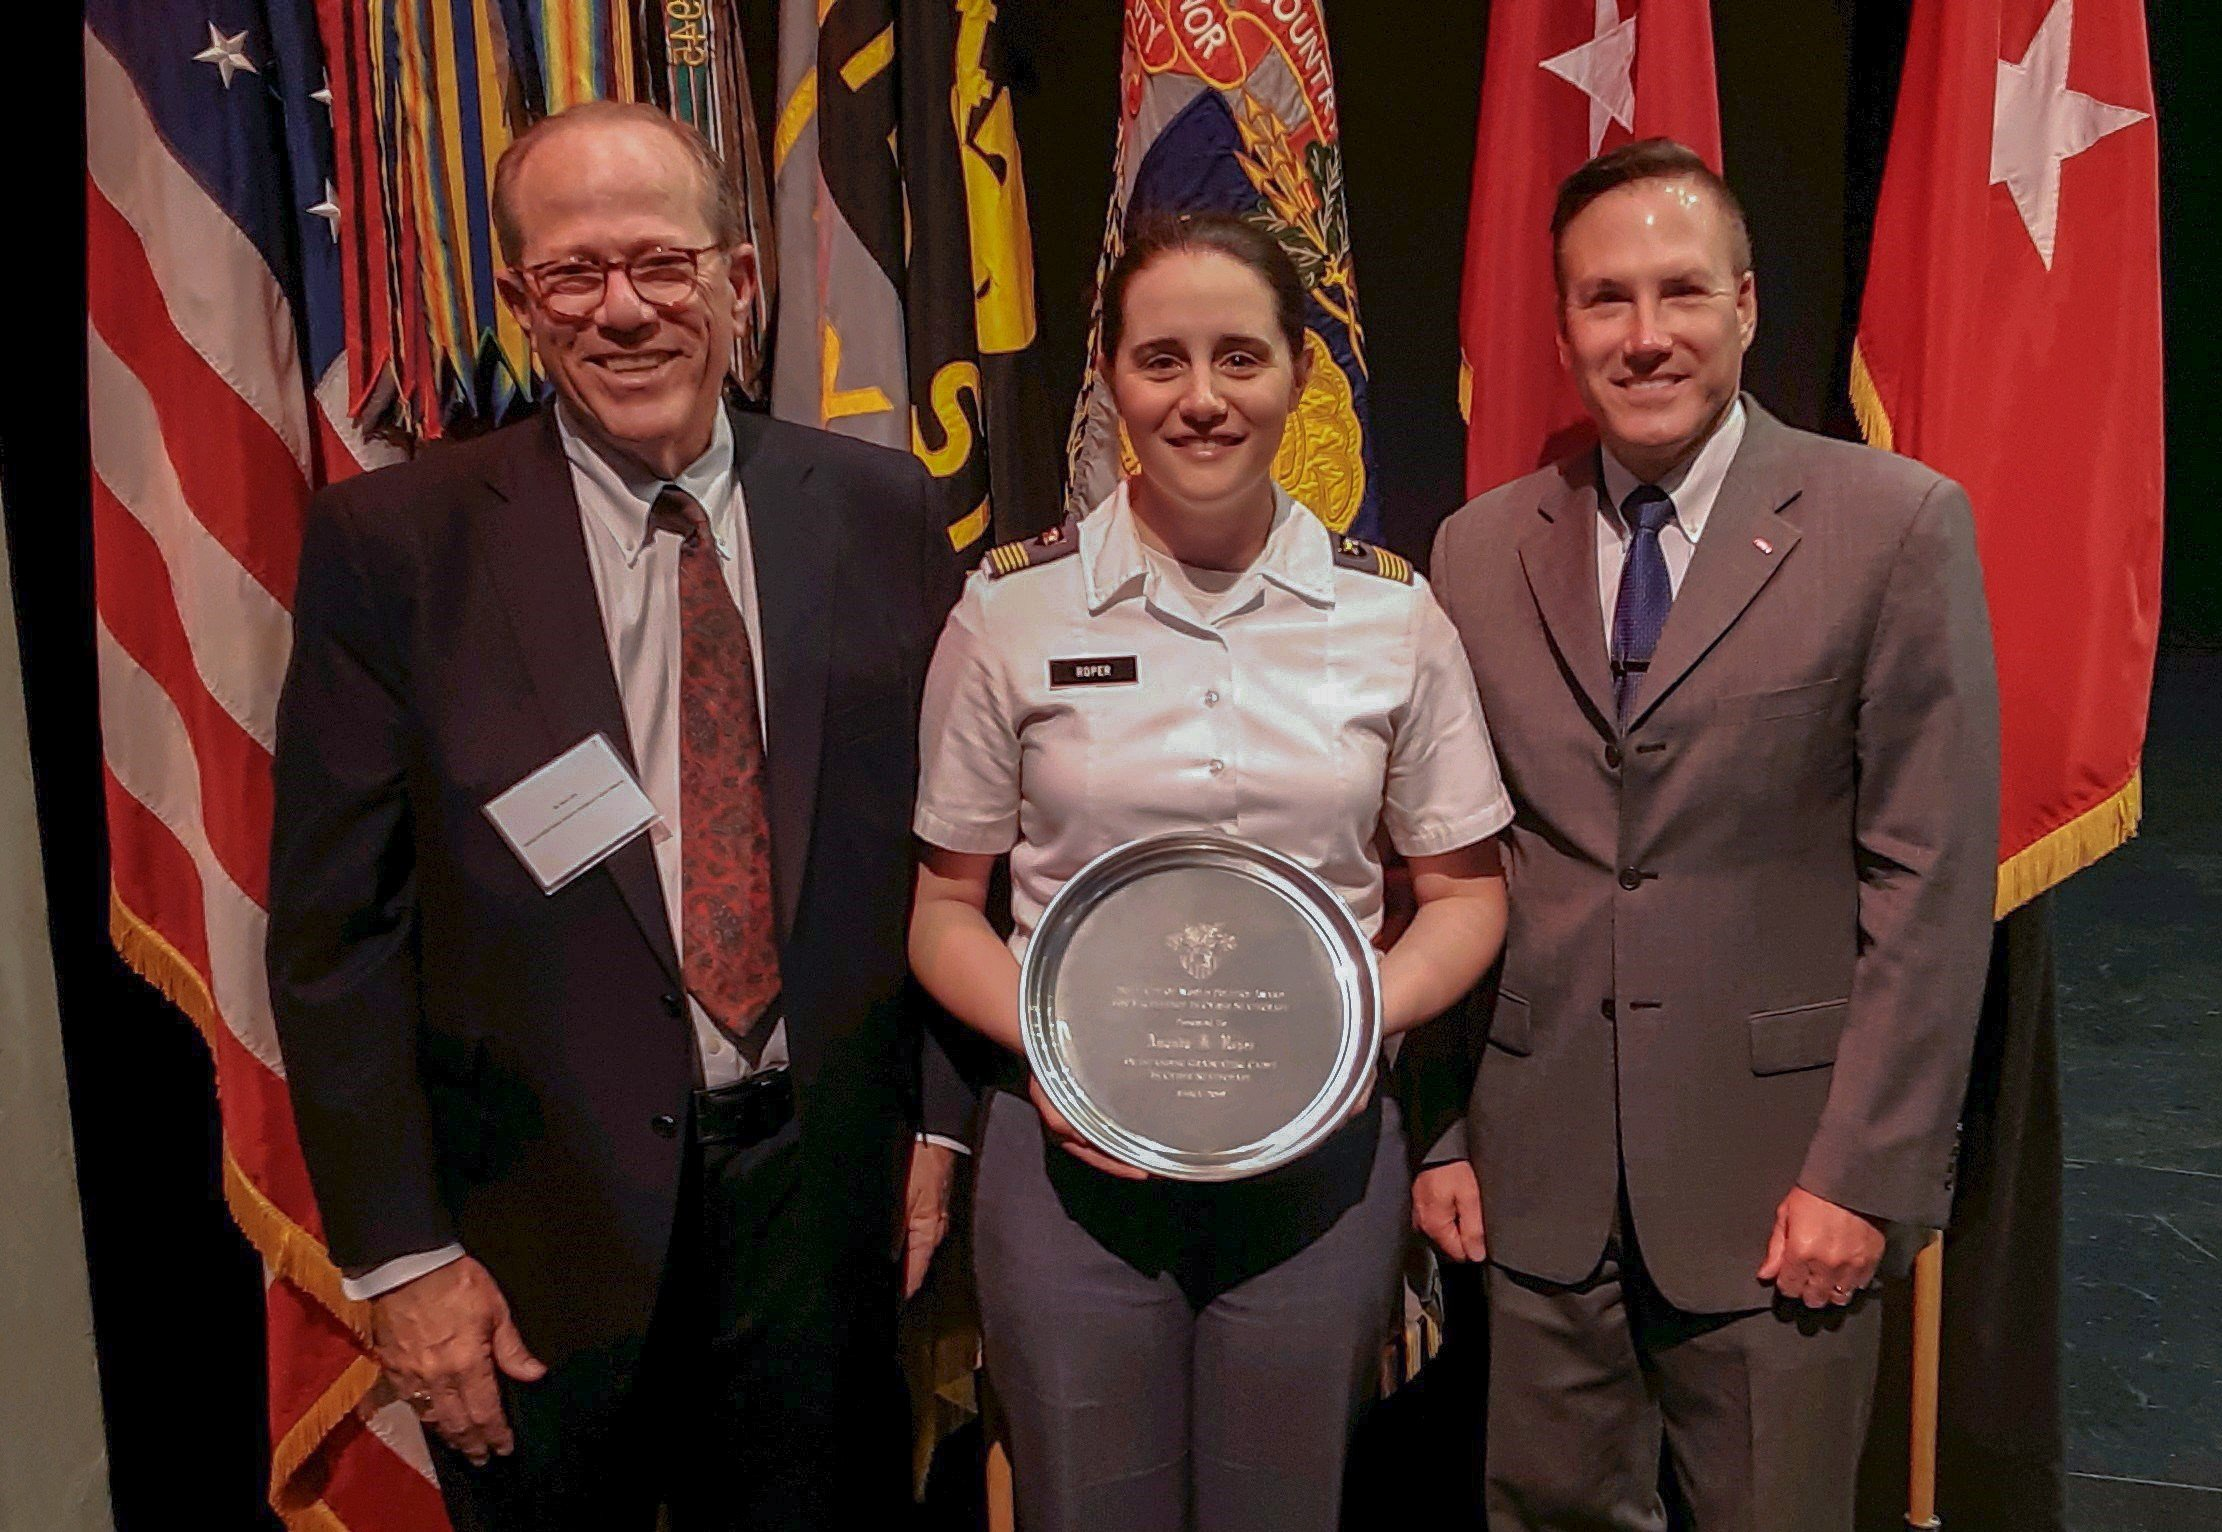 Cyber Intelligence Award given at West Point May 23 2019